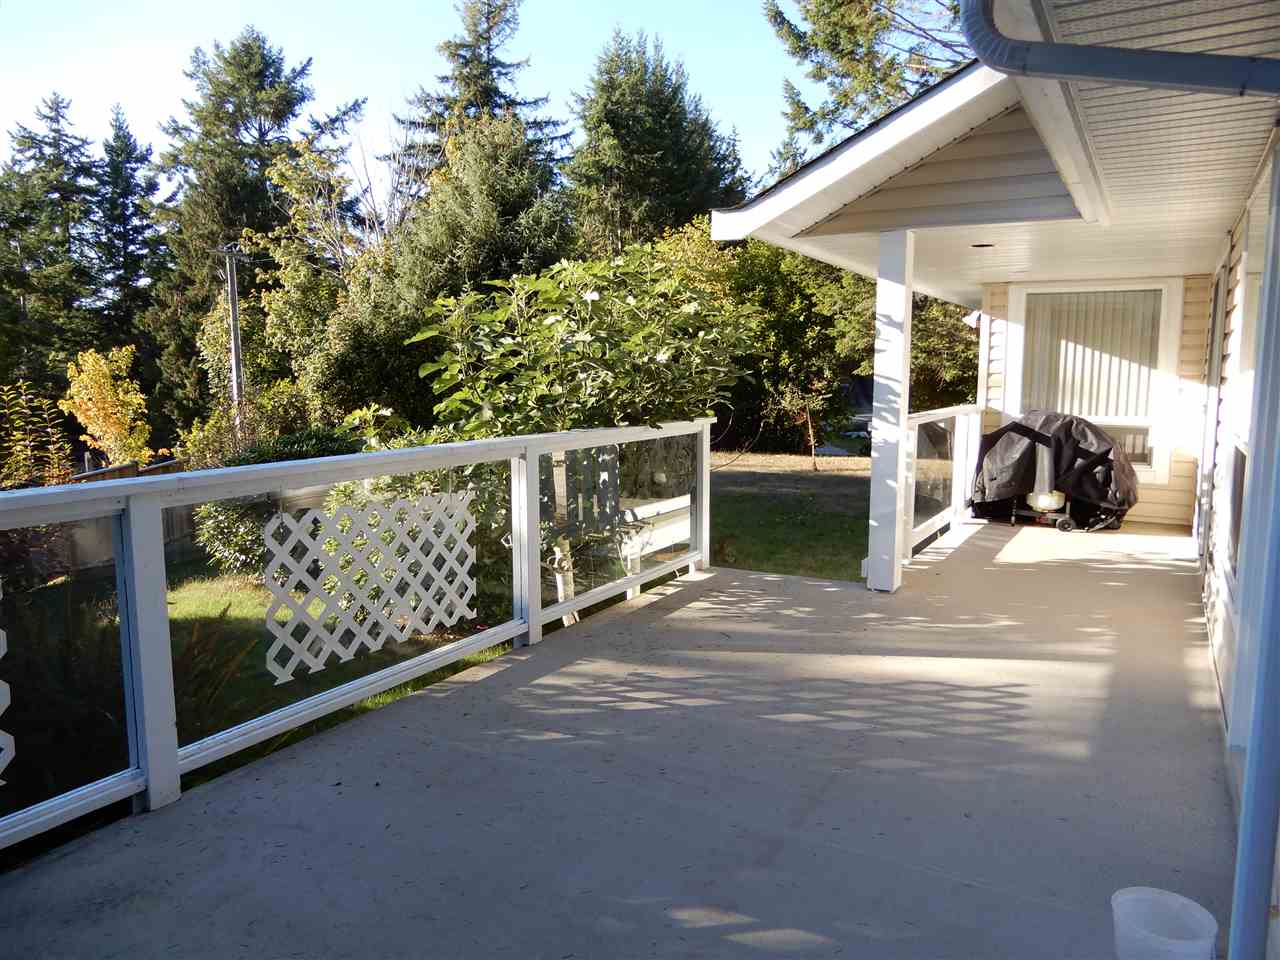 Photo 19: Photos: 4175 IRVINES LANDING Road in Garden Bay: Pender Harbour Egmont House for sale (Sunshine Coast)  : MLS®# R2213995